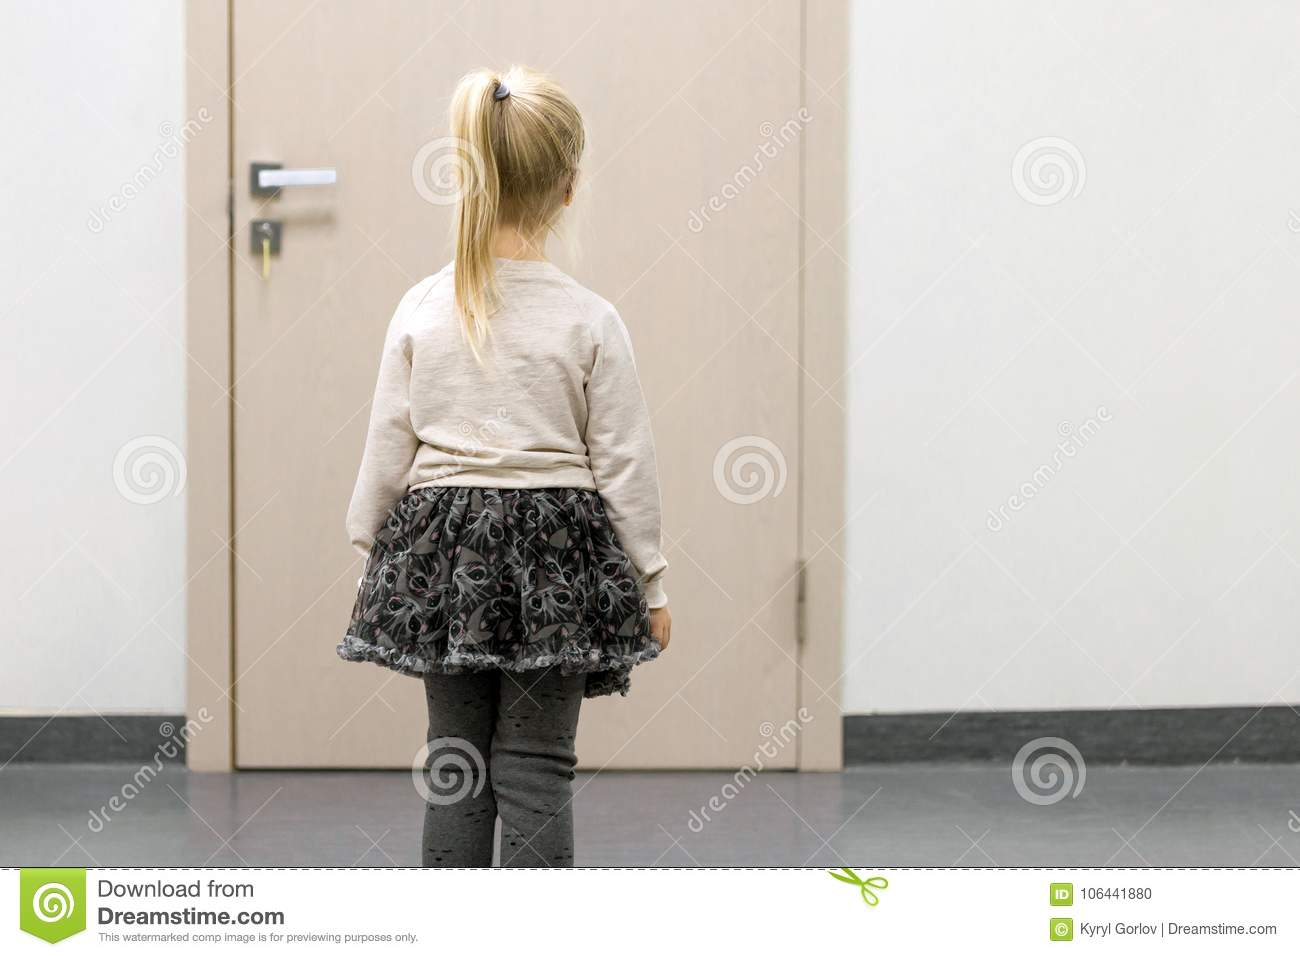 Little girl standing in front of doctors door